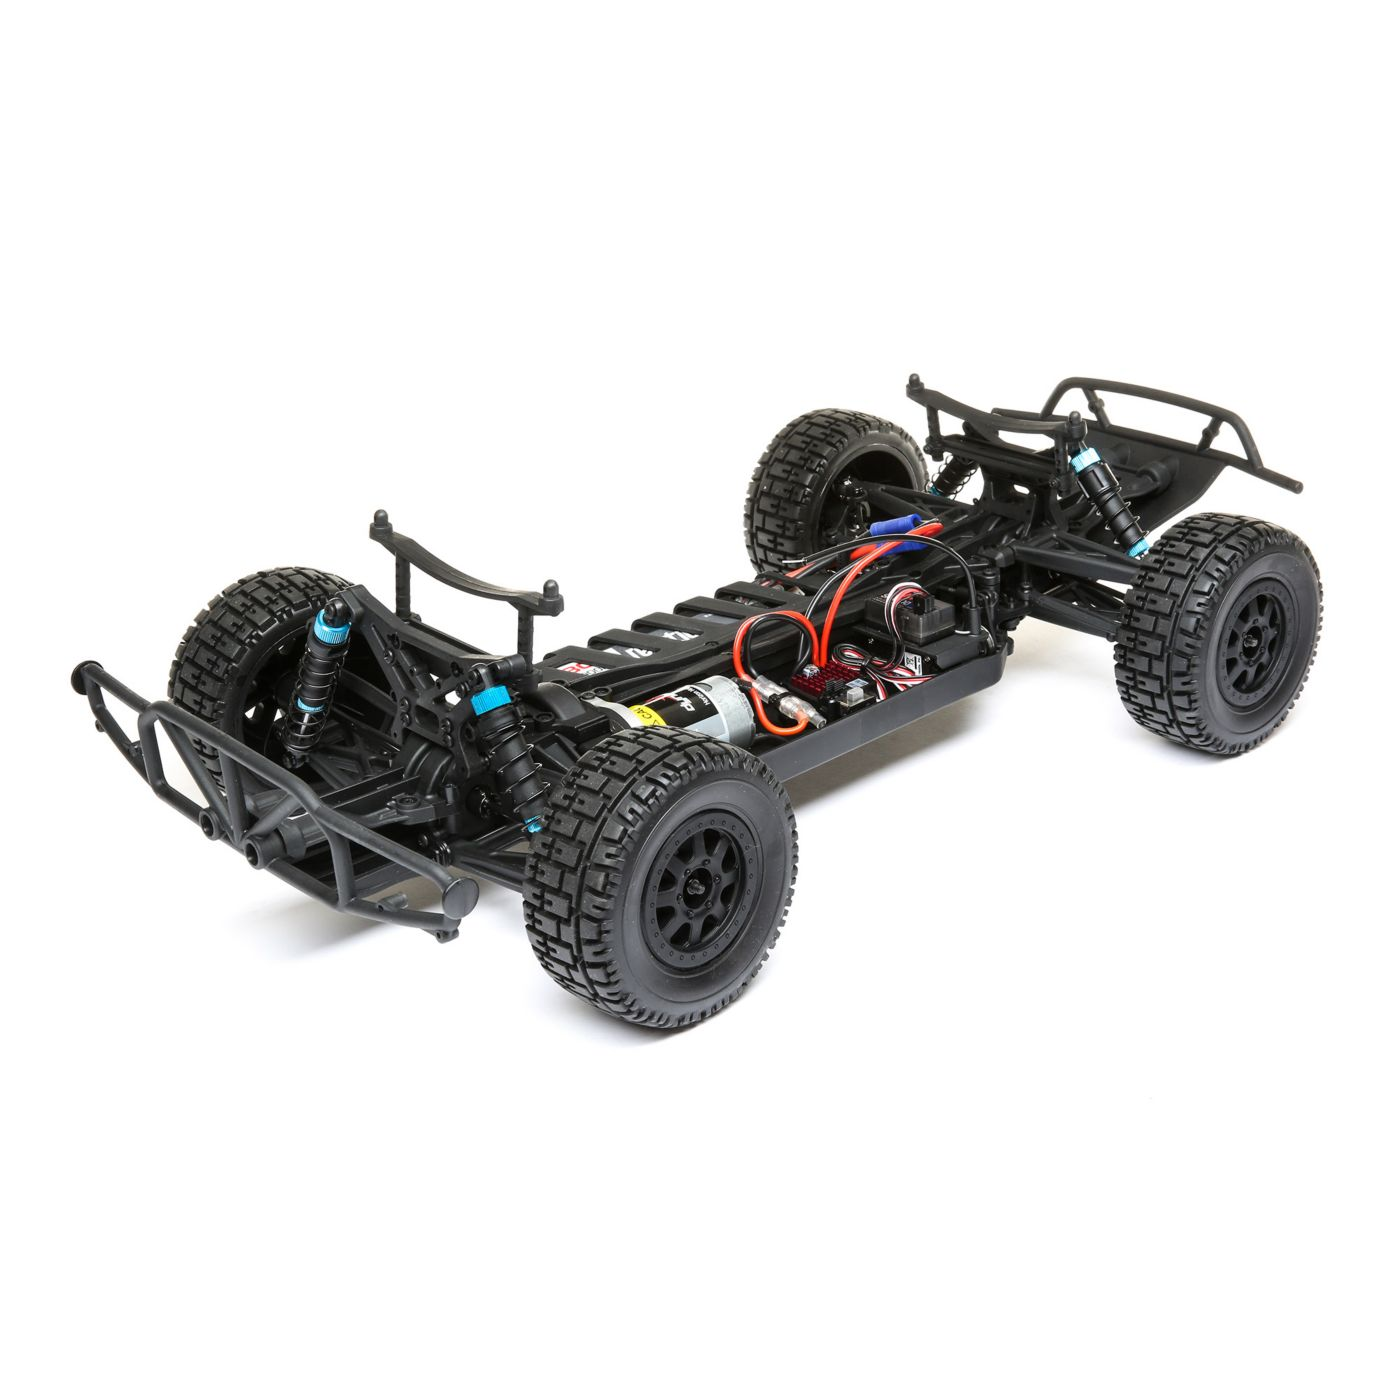 ECX Torment Brushed 4WD - Chassis